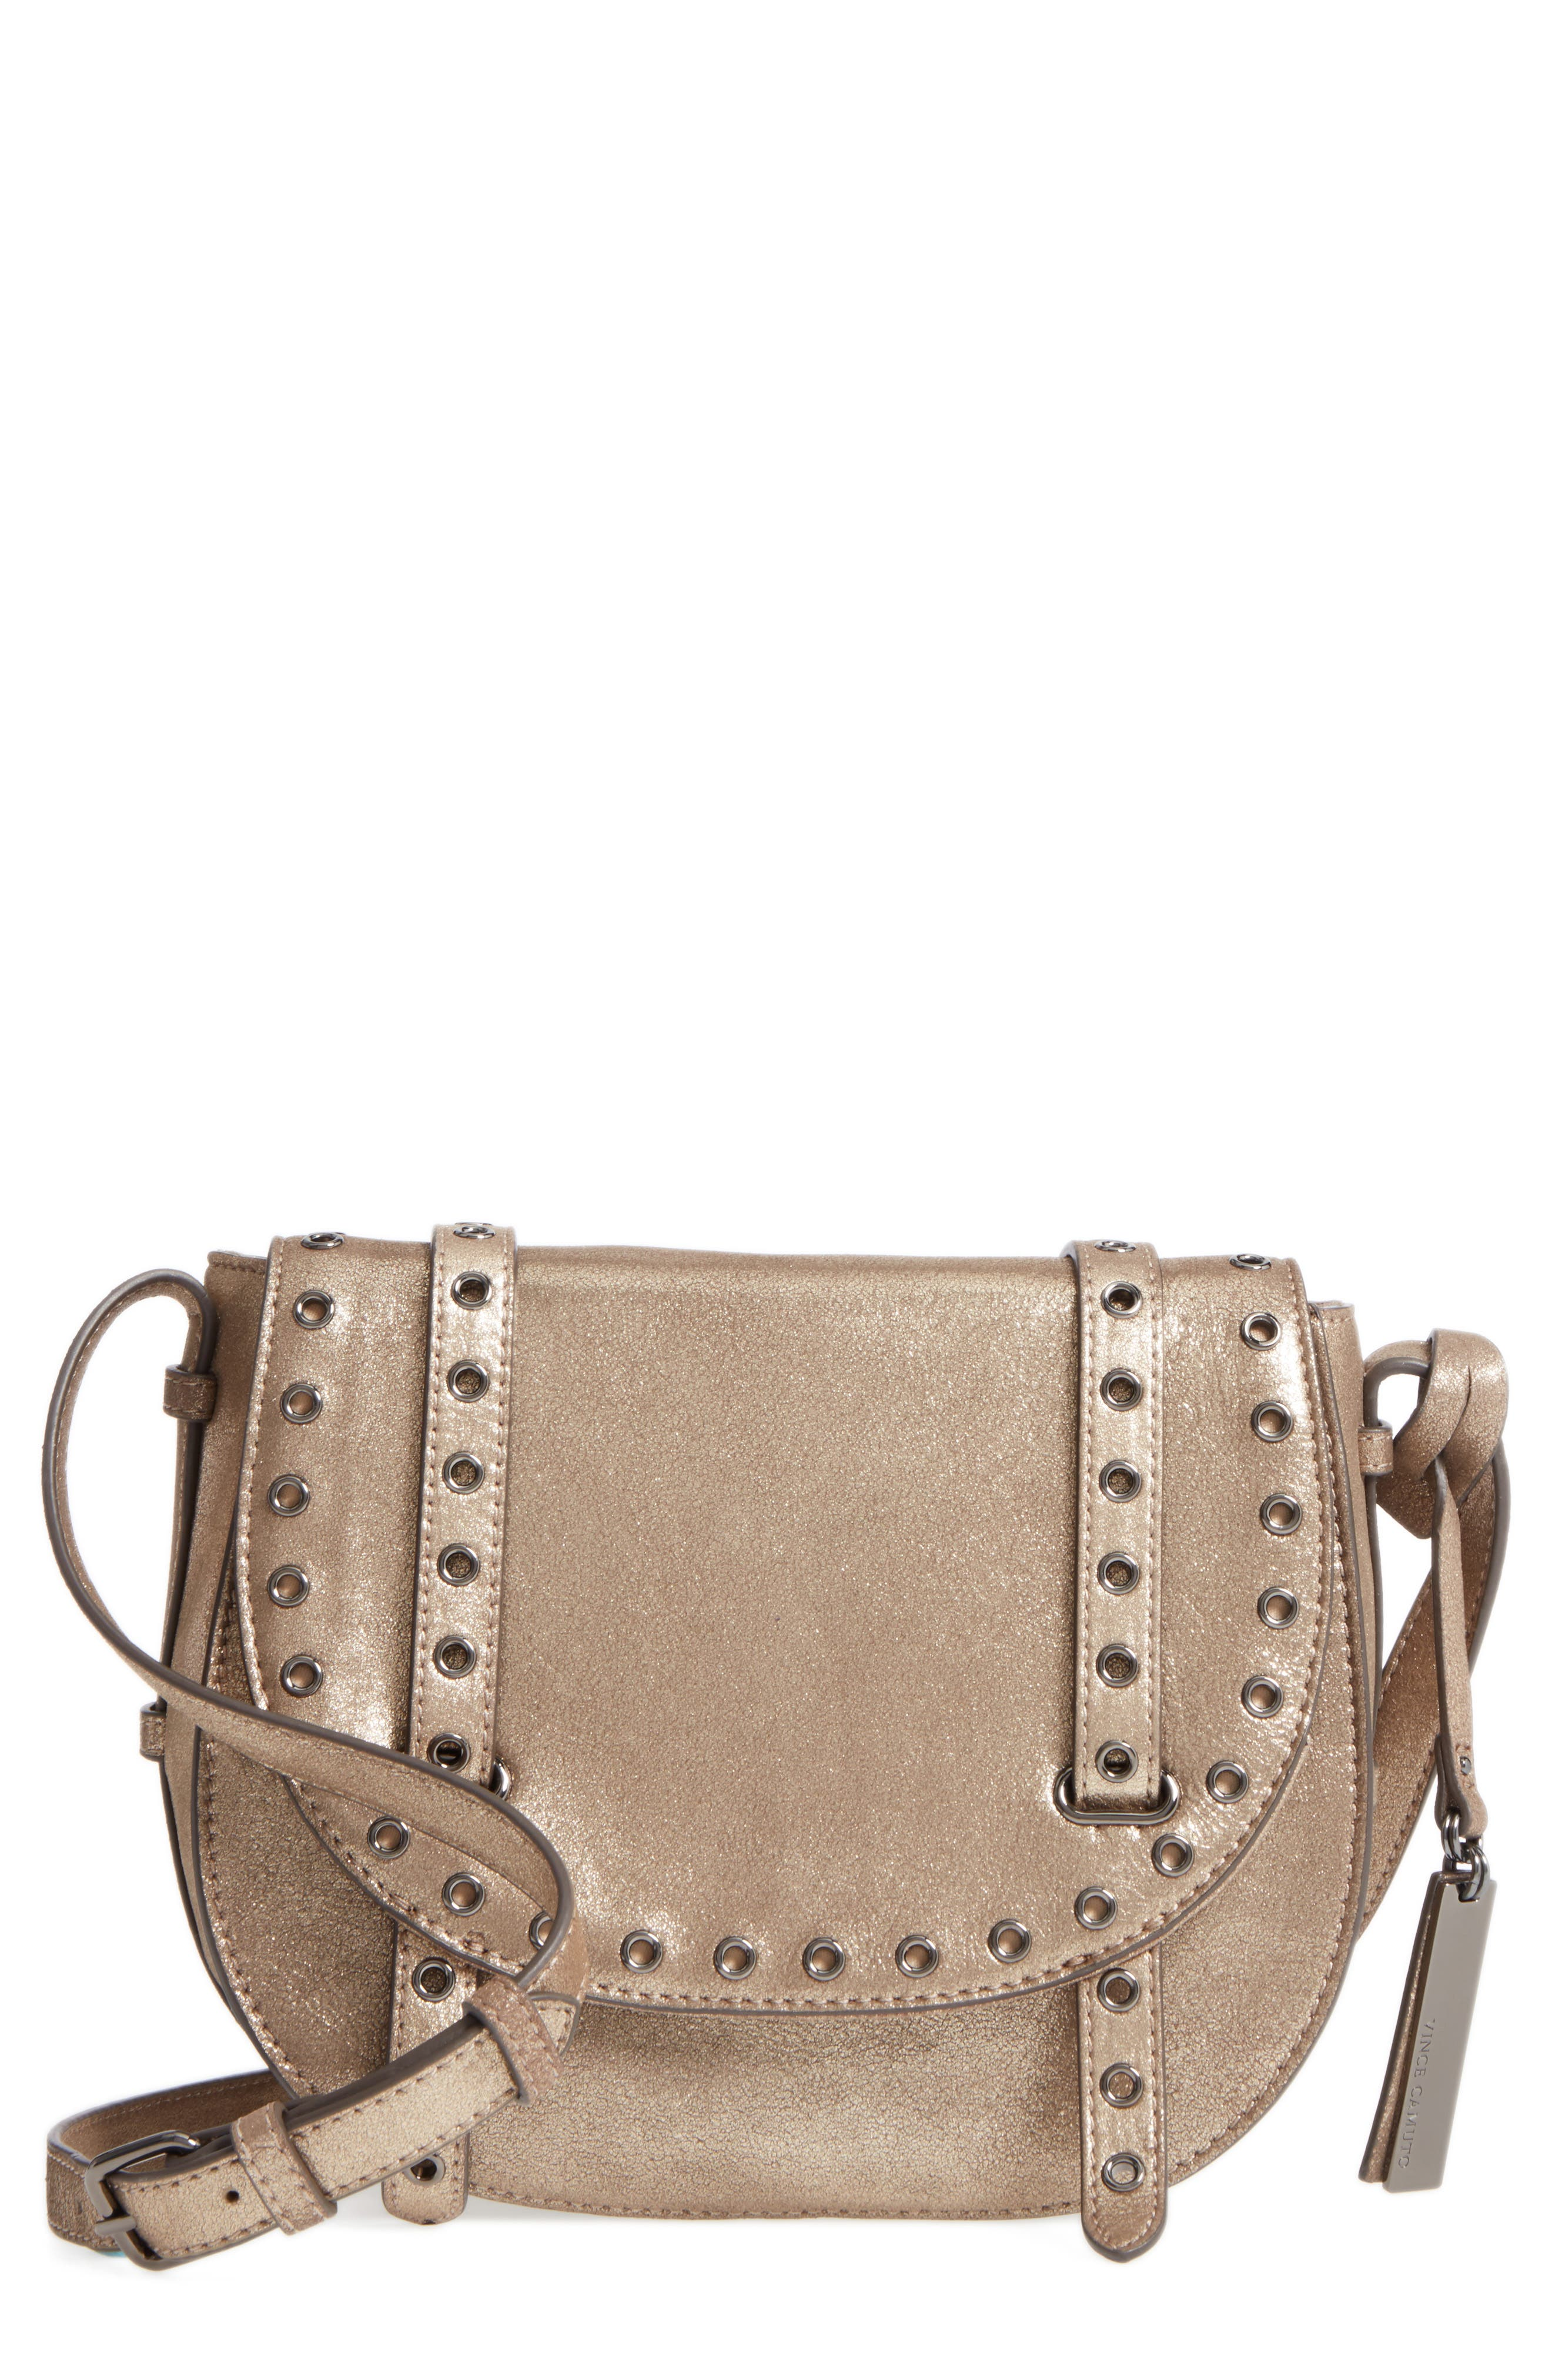 Areli Suede & Leather Crossbody Saddle Bag,                             Main thumbnail 1, color,                             710